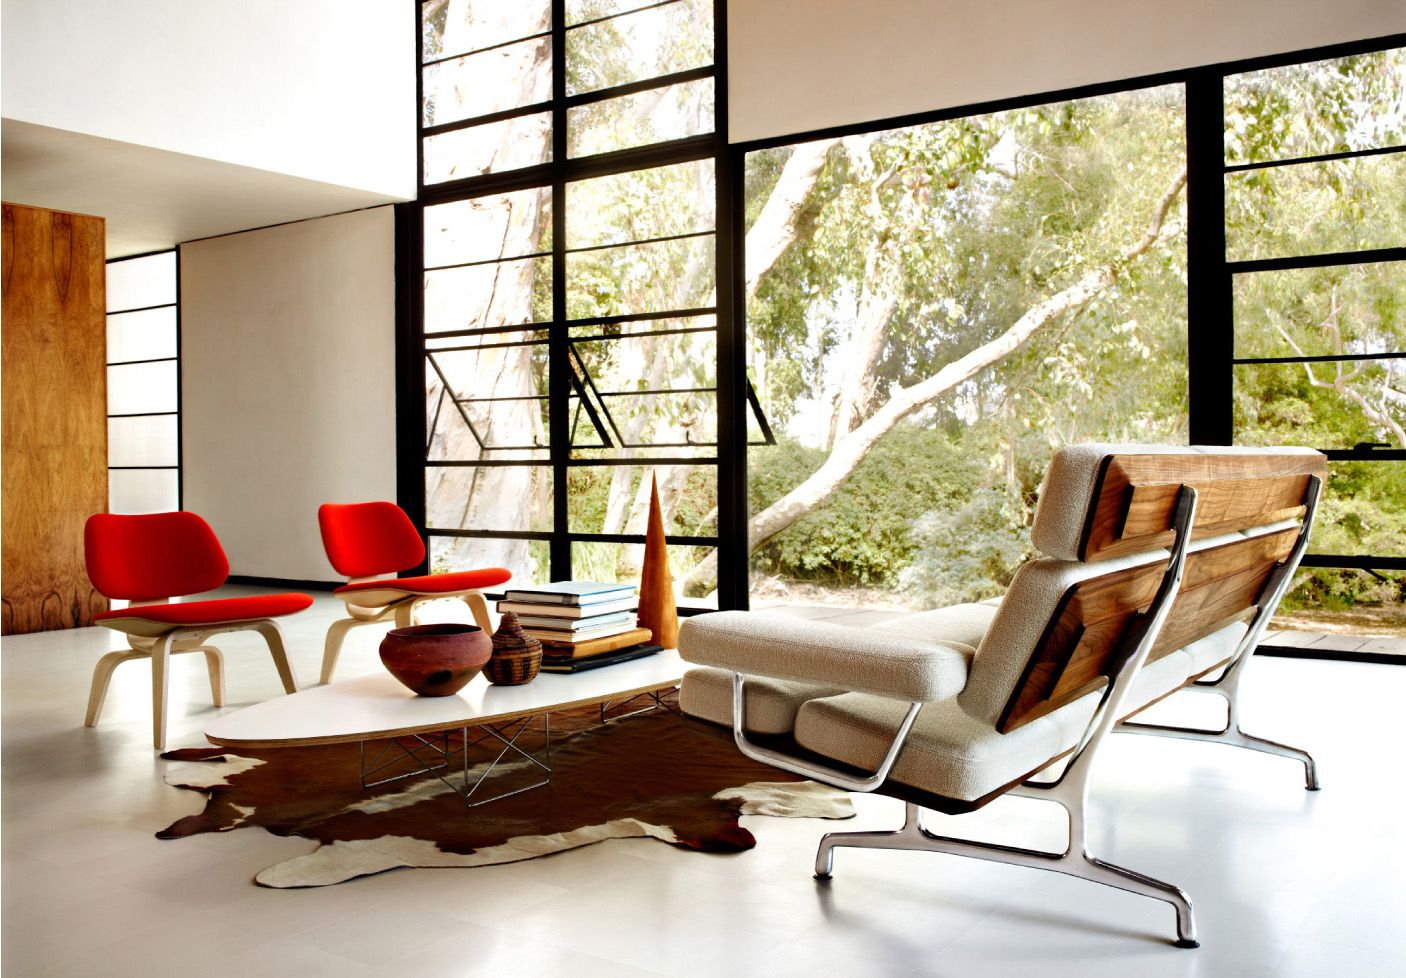 White Eames Molded Plywood Highback sofa with Wood backing and metal frame and legs